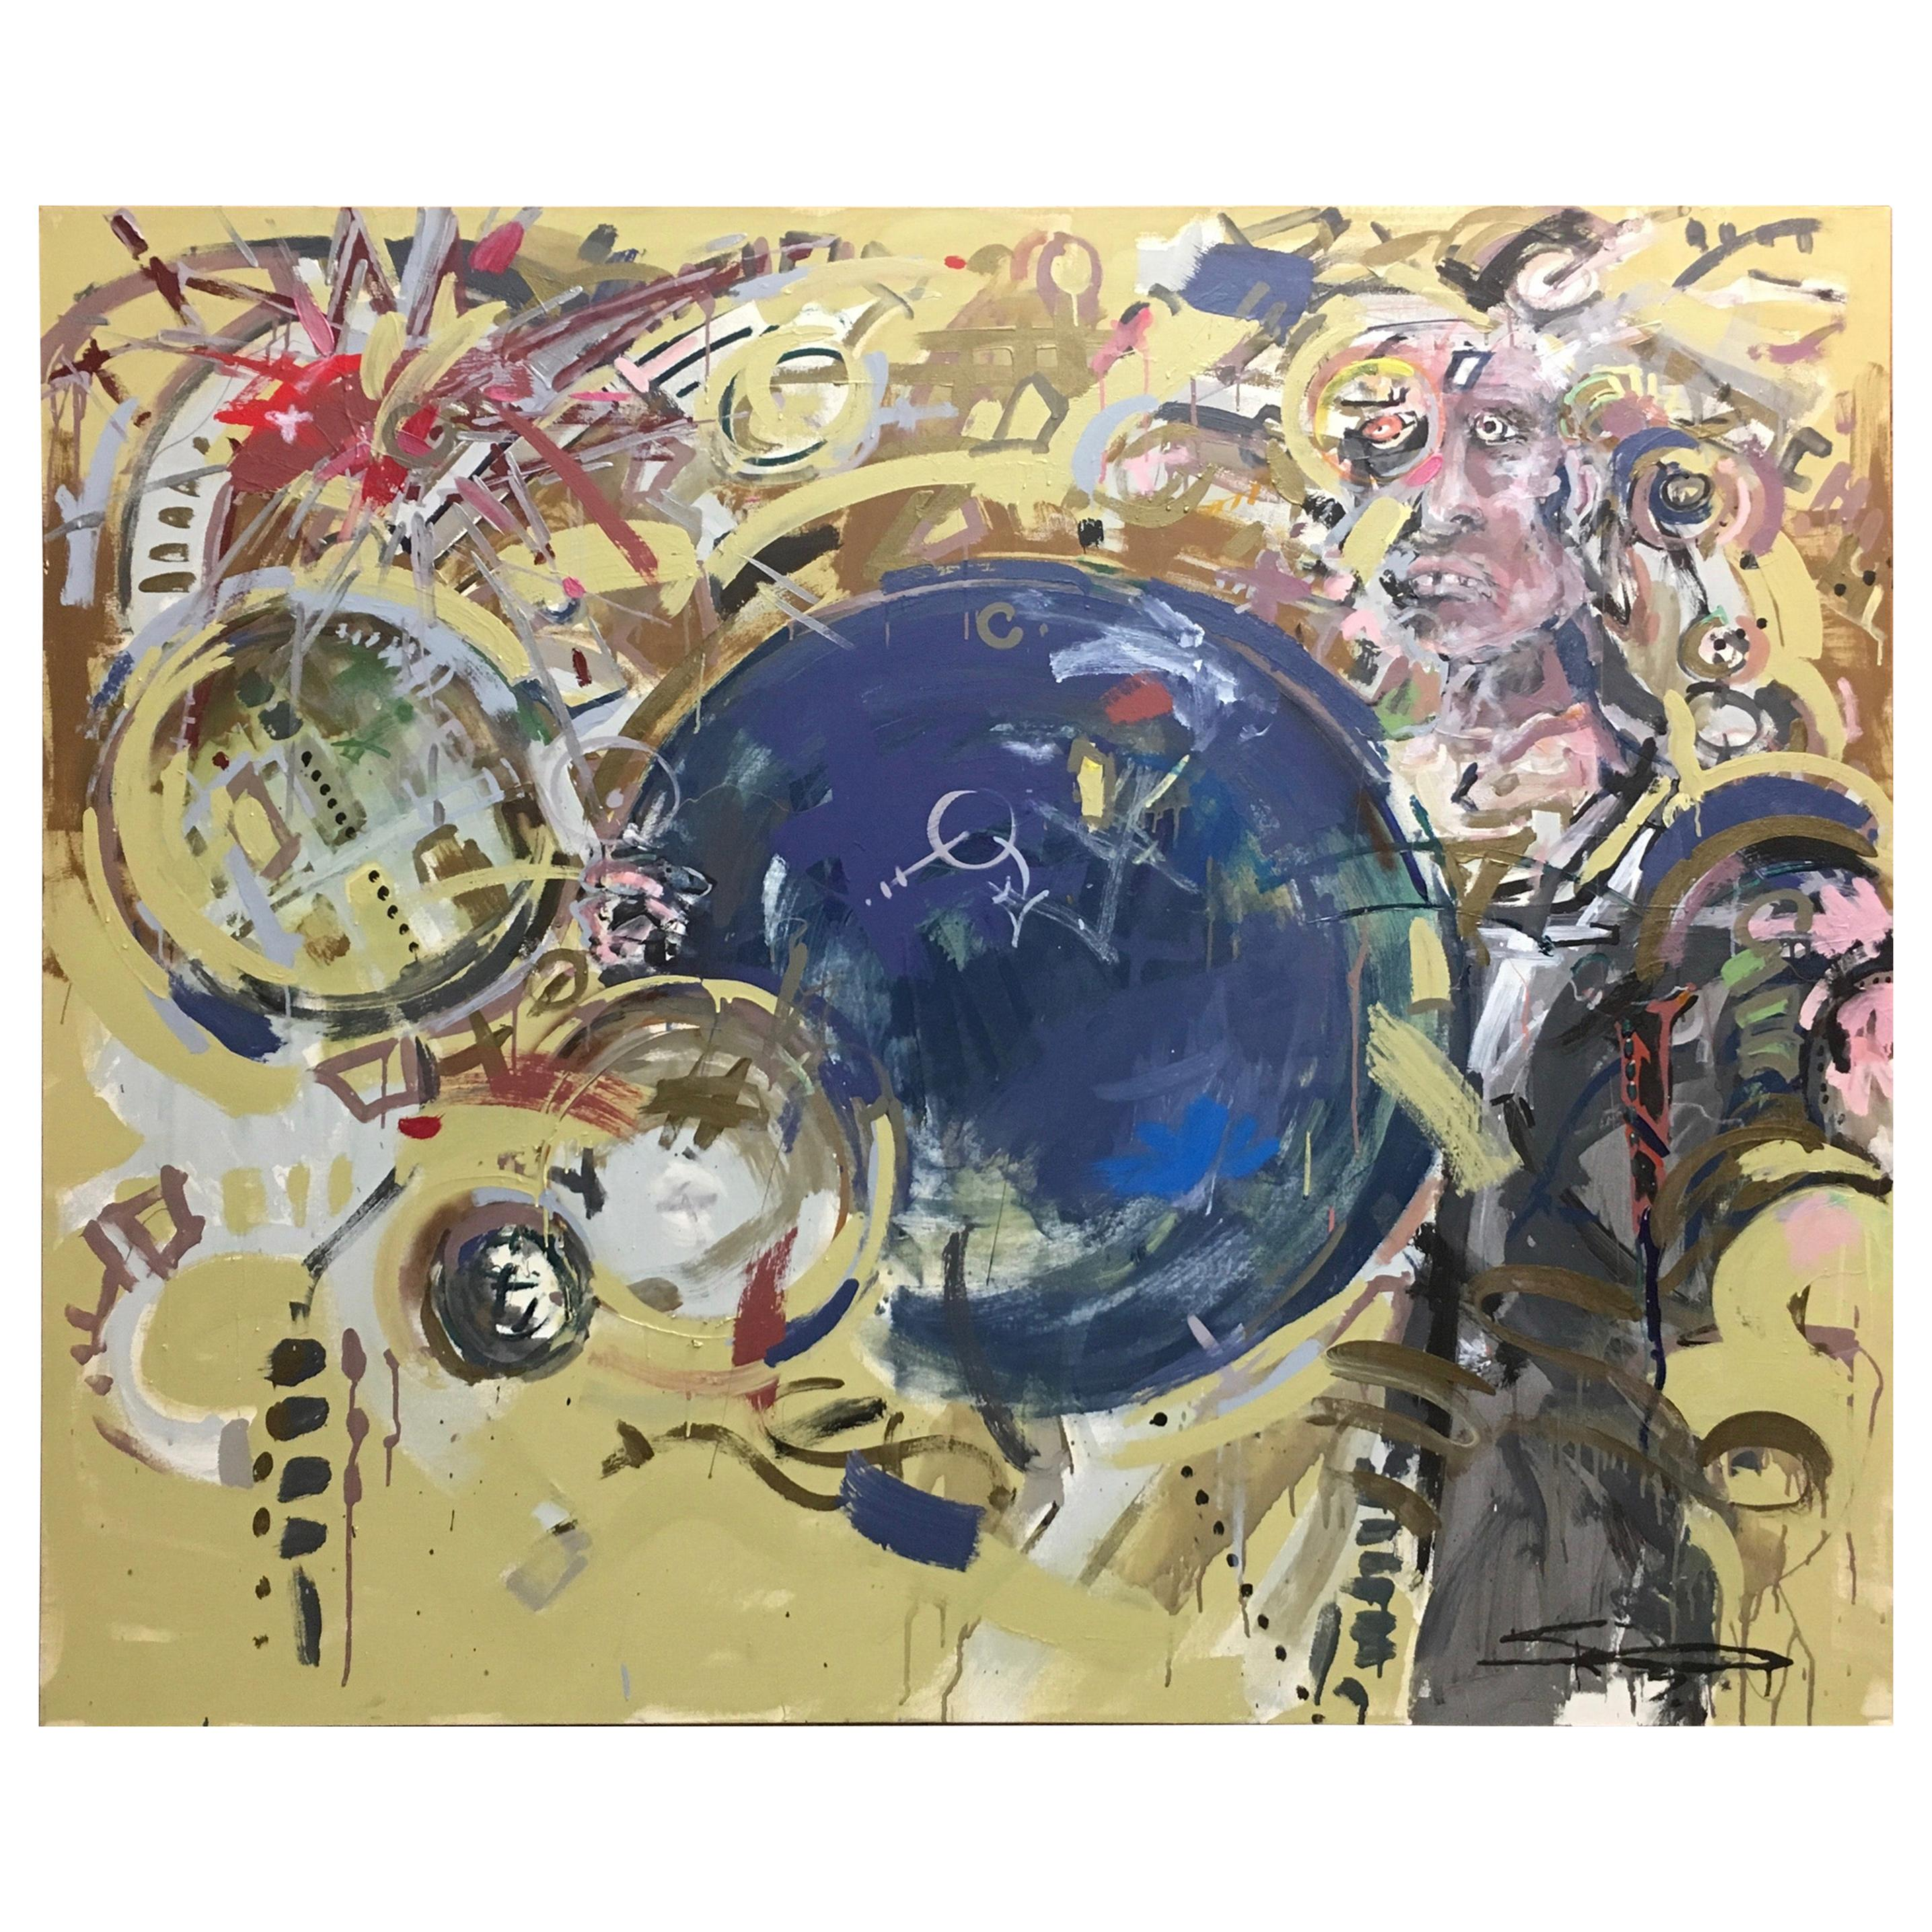 Oversized Contemporary Abstract Painting on Canvas